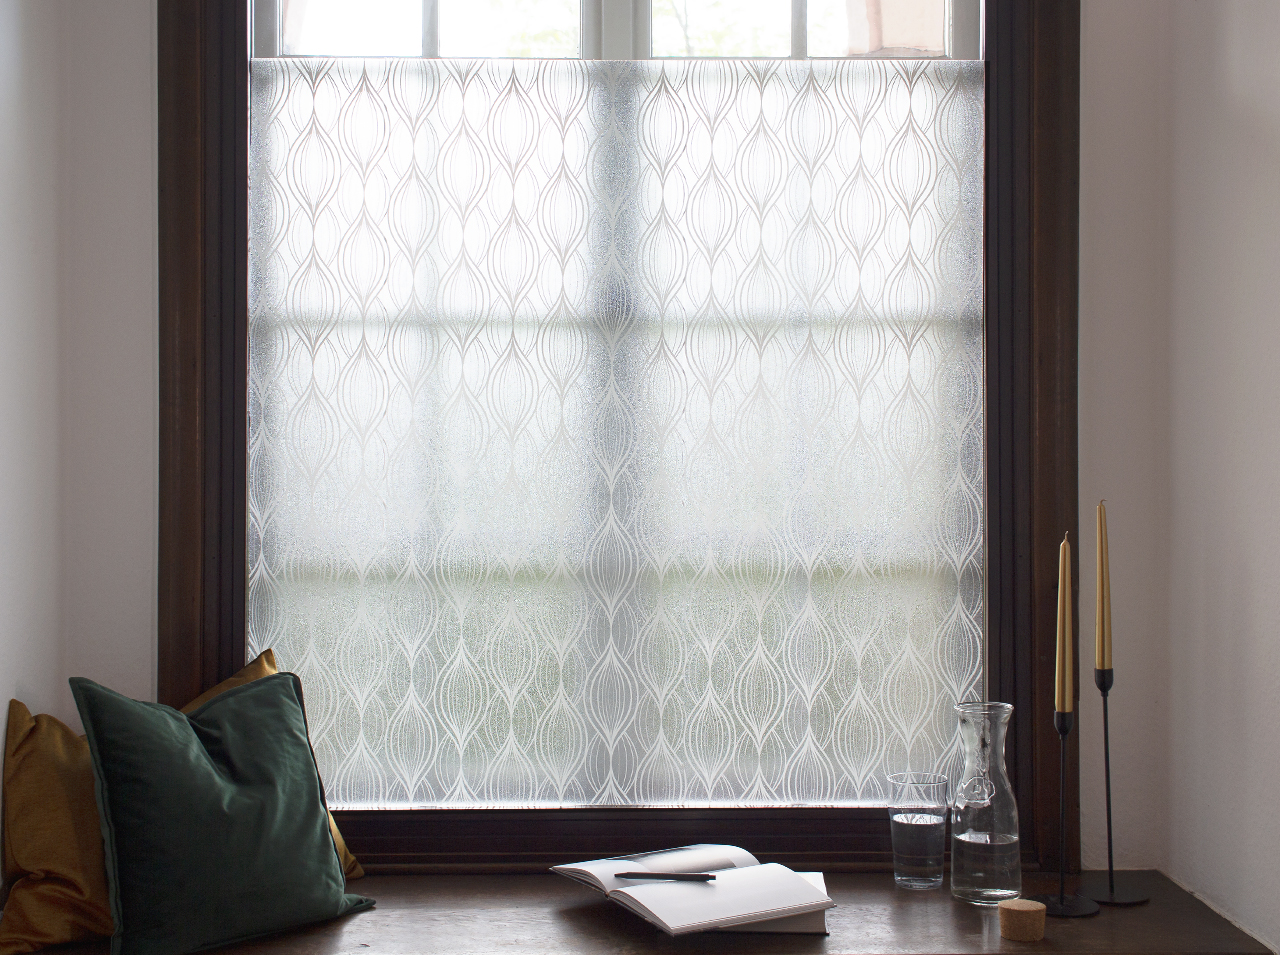 Glass surfaces in the conservatory are covered with the opaque d-c-fix® Charis window film.